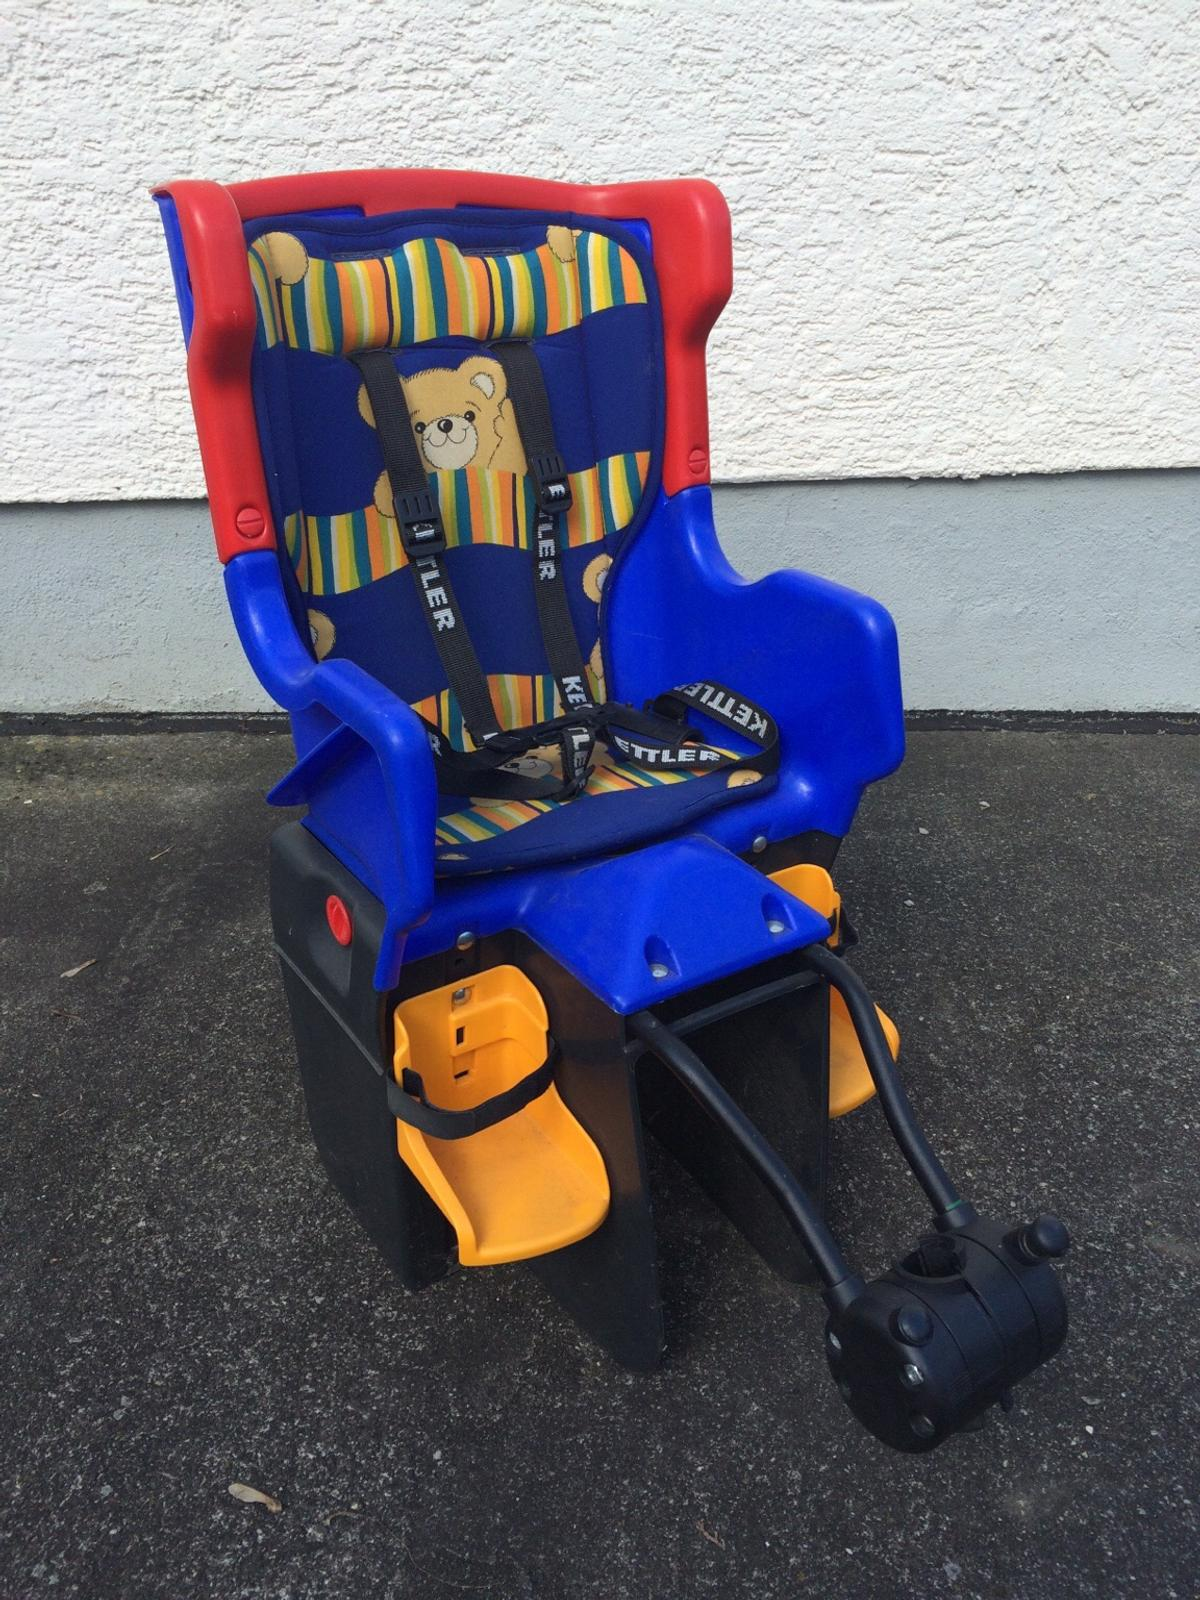 Kettler Fahrrad Kindersitz Teddy In 61118 Bad Vilbel For 2500